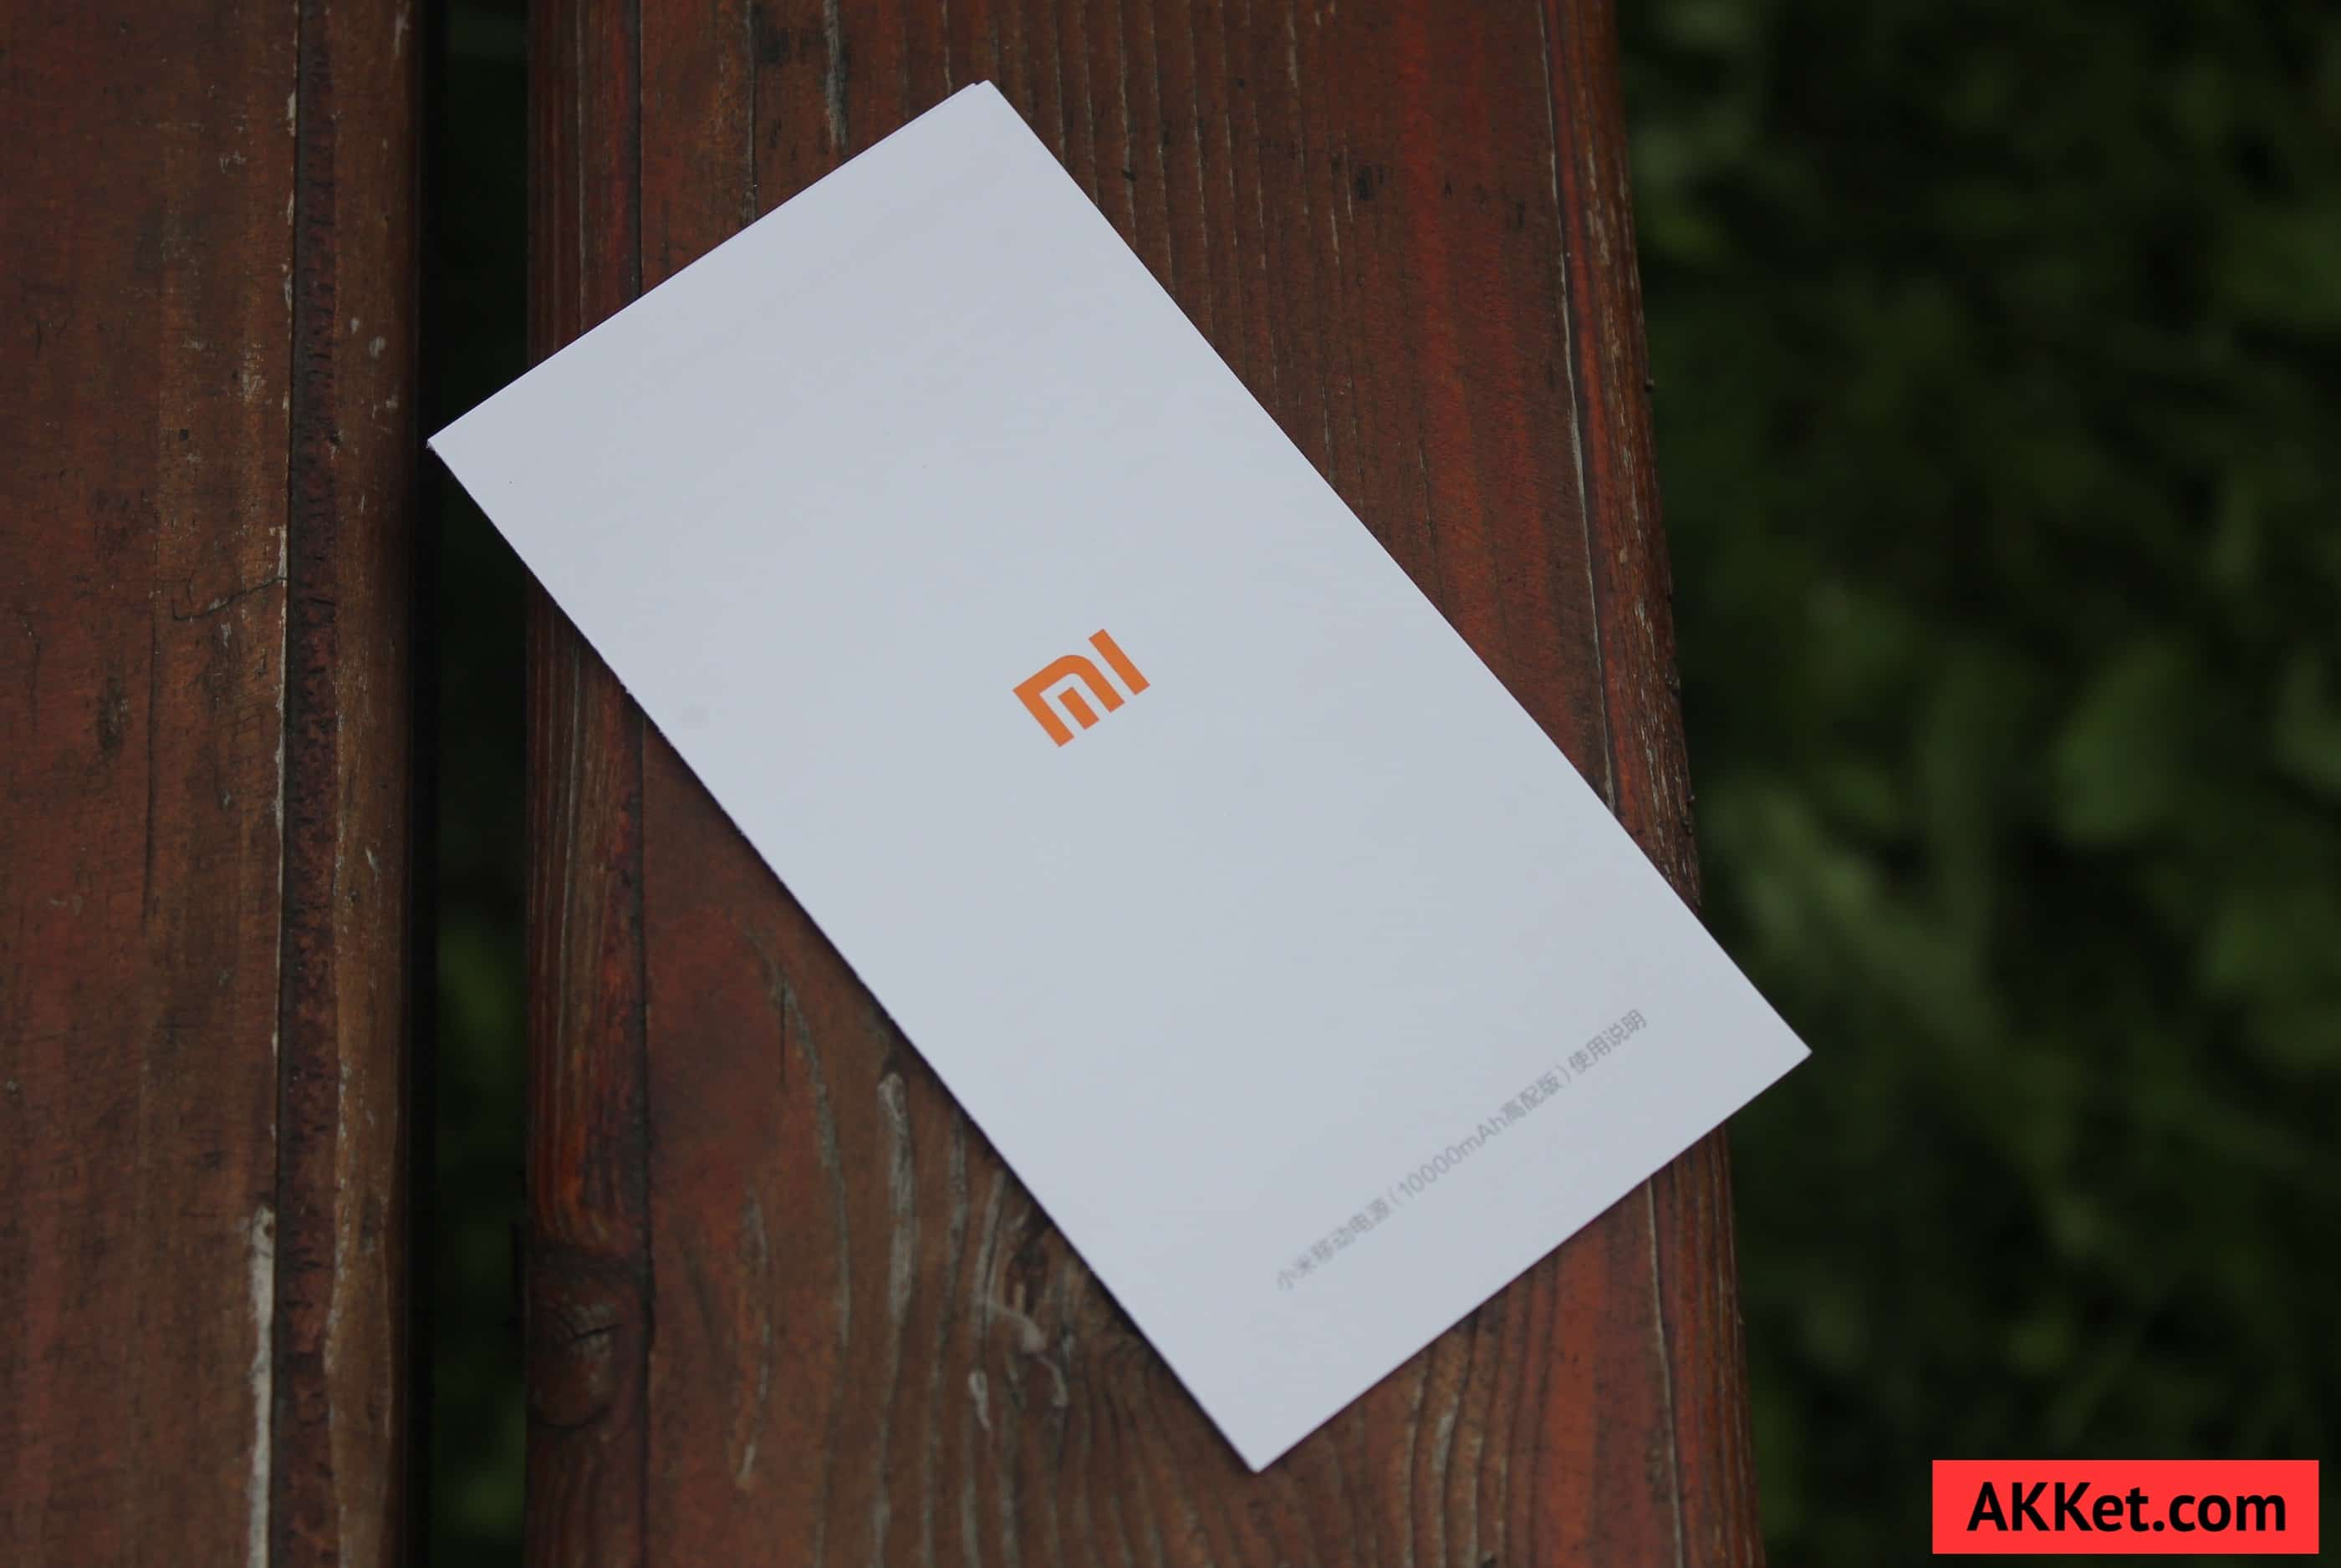 Xiaomi Mi Power Bank Pro 10000 мАч review photo 16